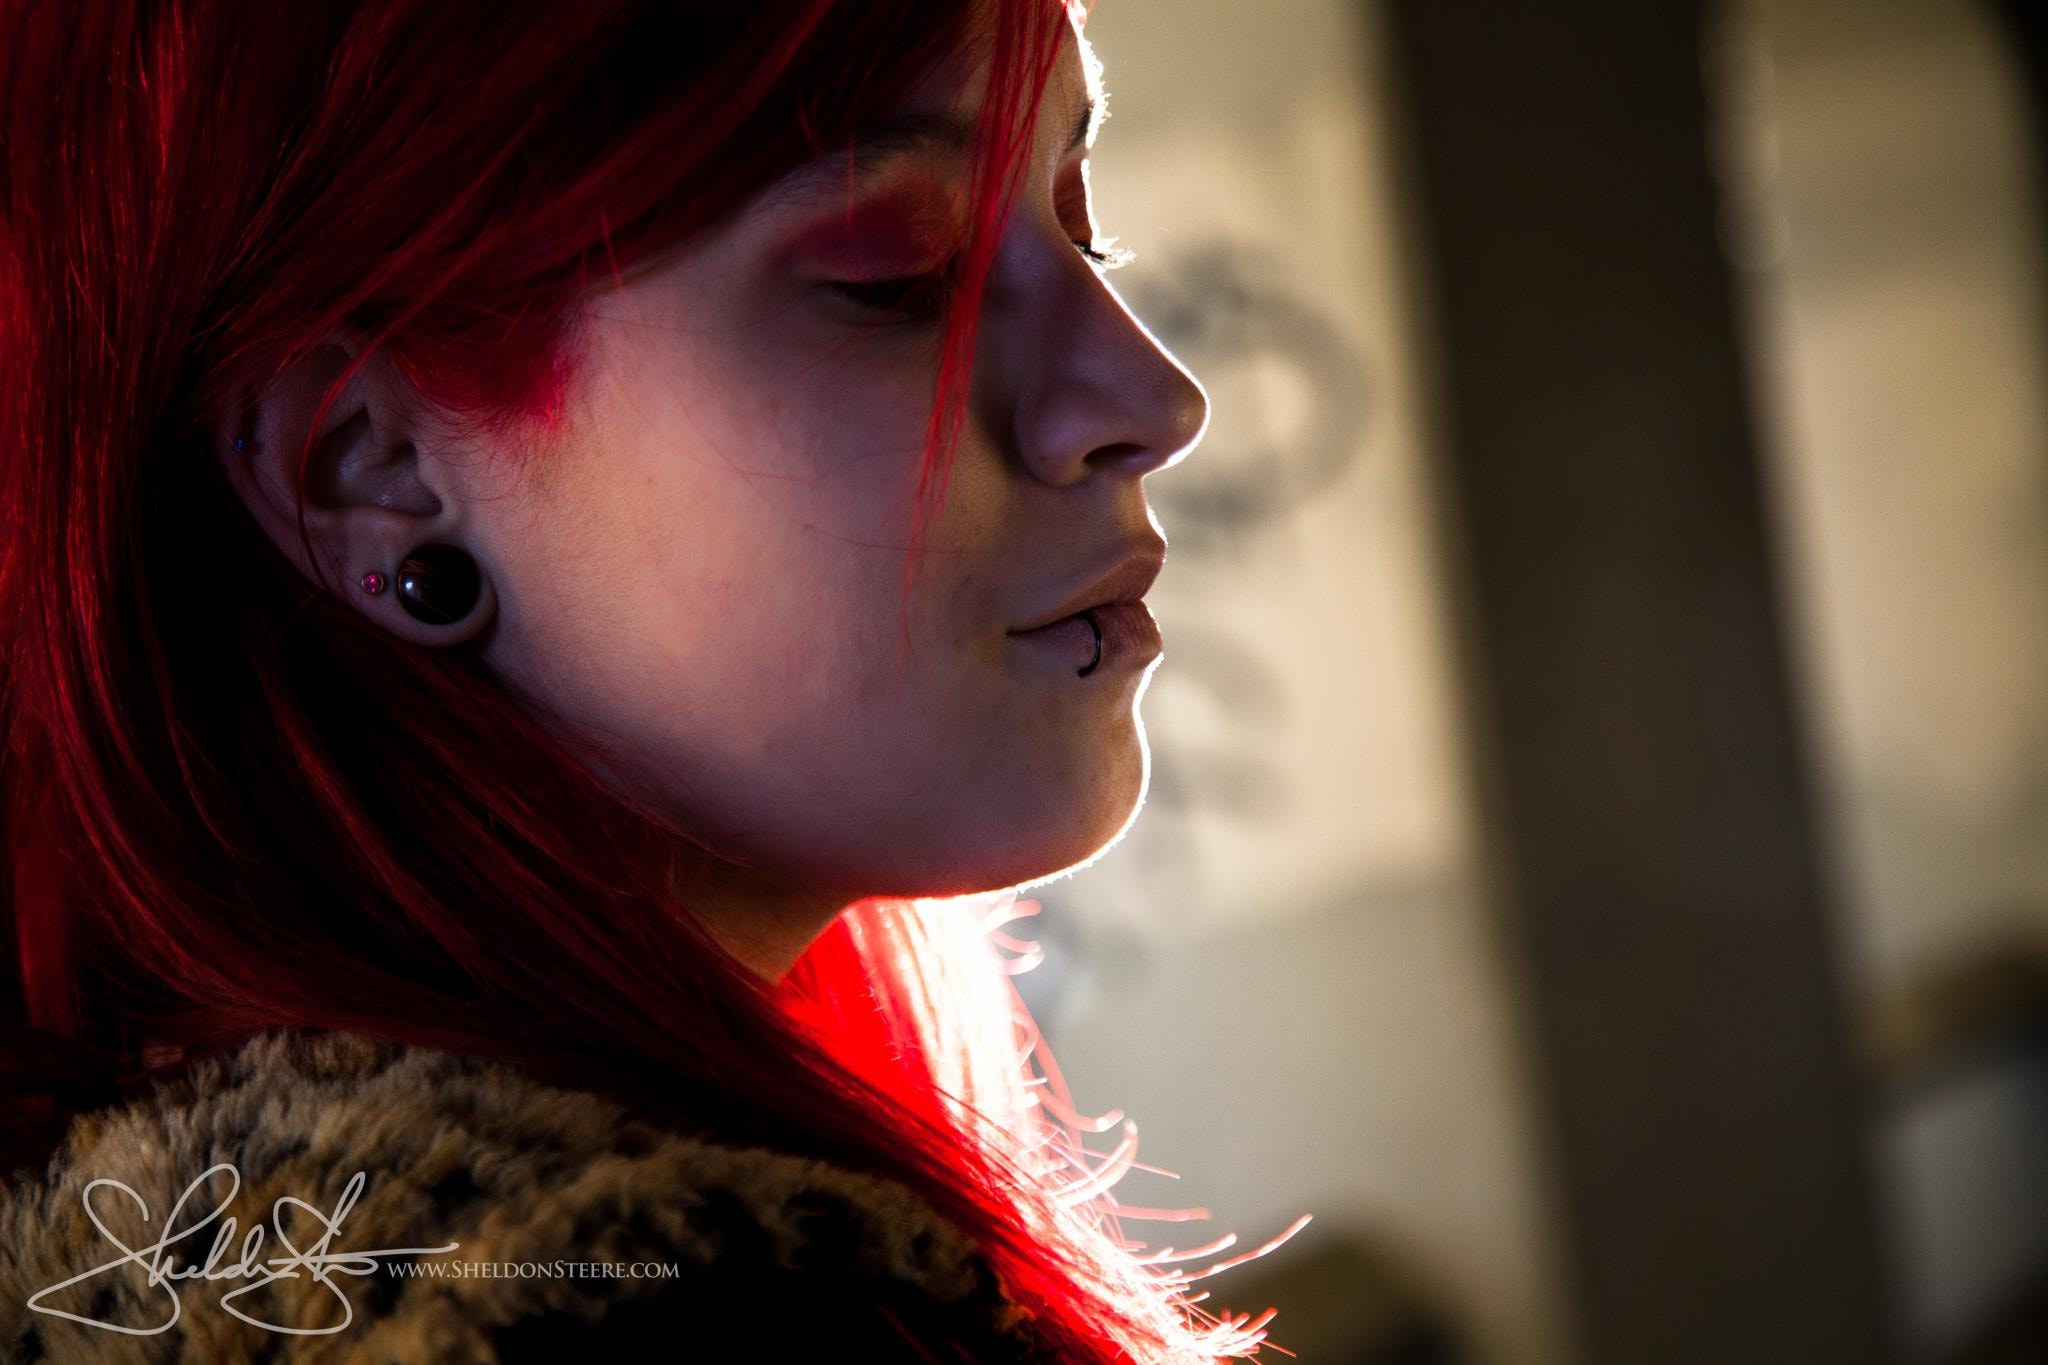 Photograph Adrian in the Light by Sheldon Steere on 500px